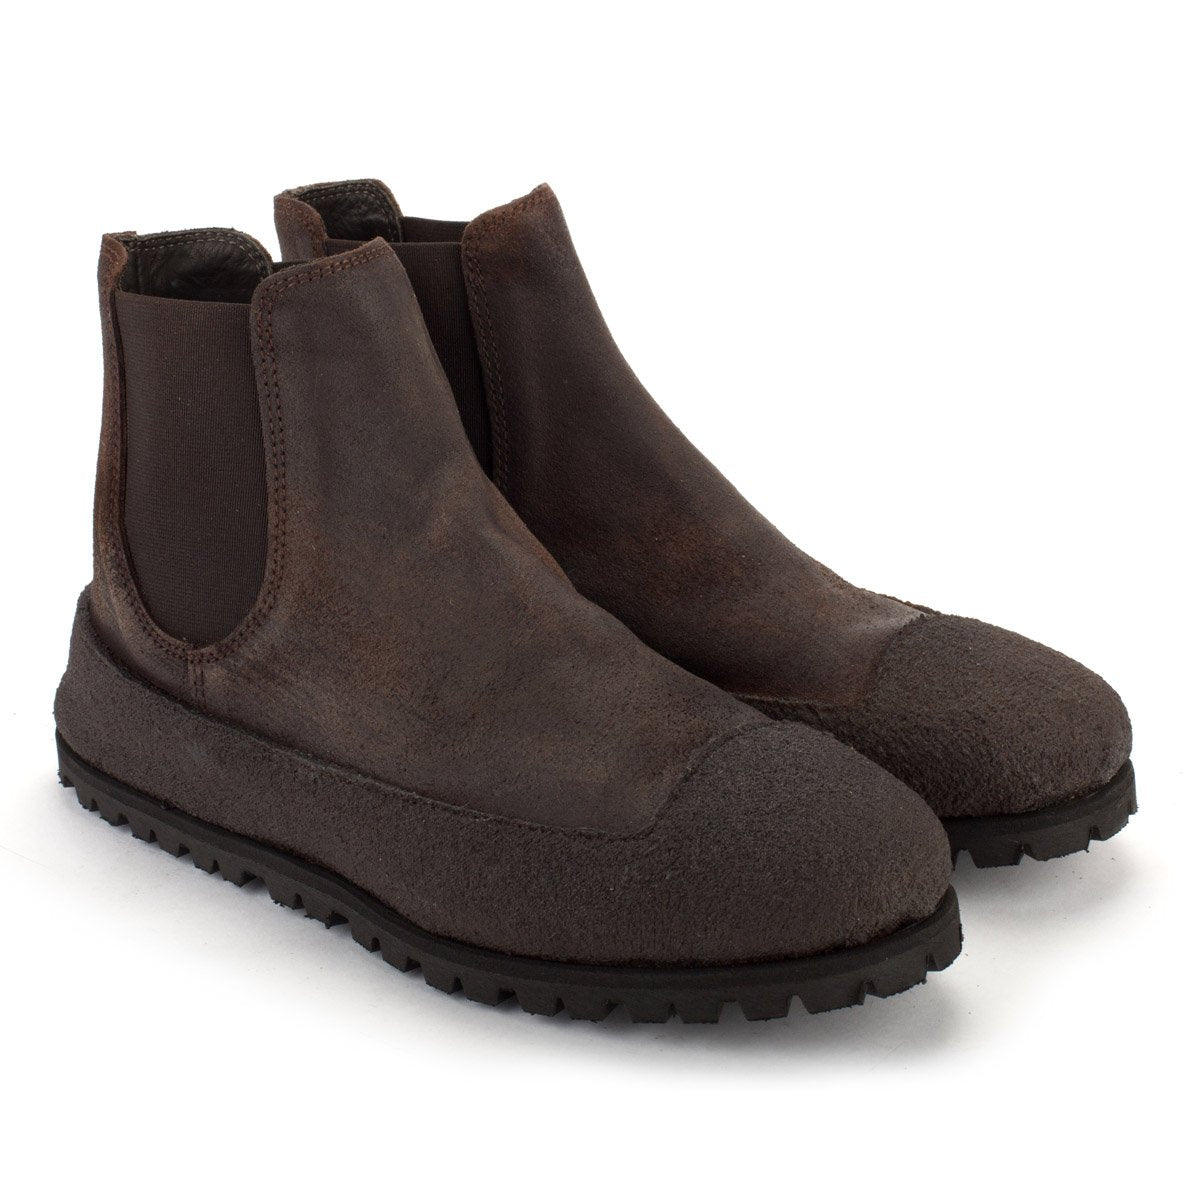 CR25 SUEDE CHELSEA BOOTS – Coffe